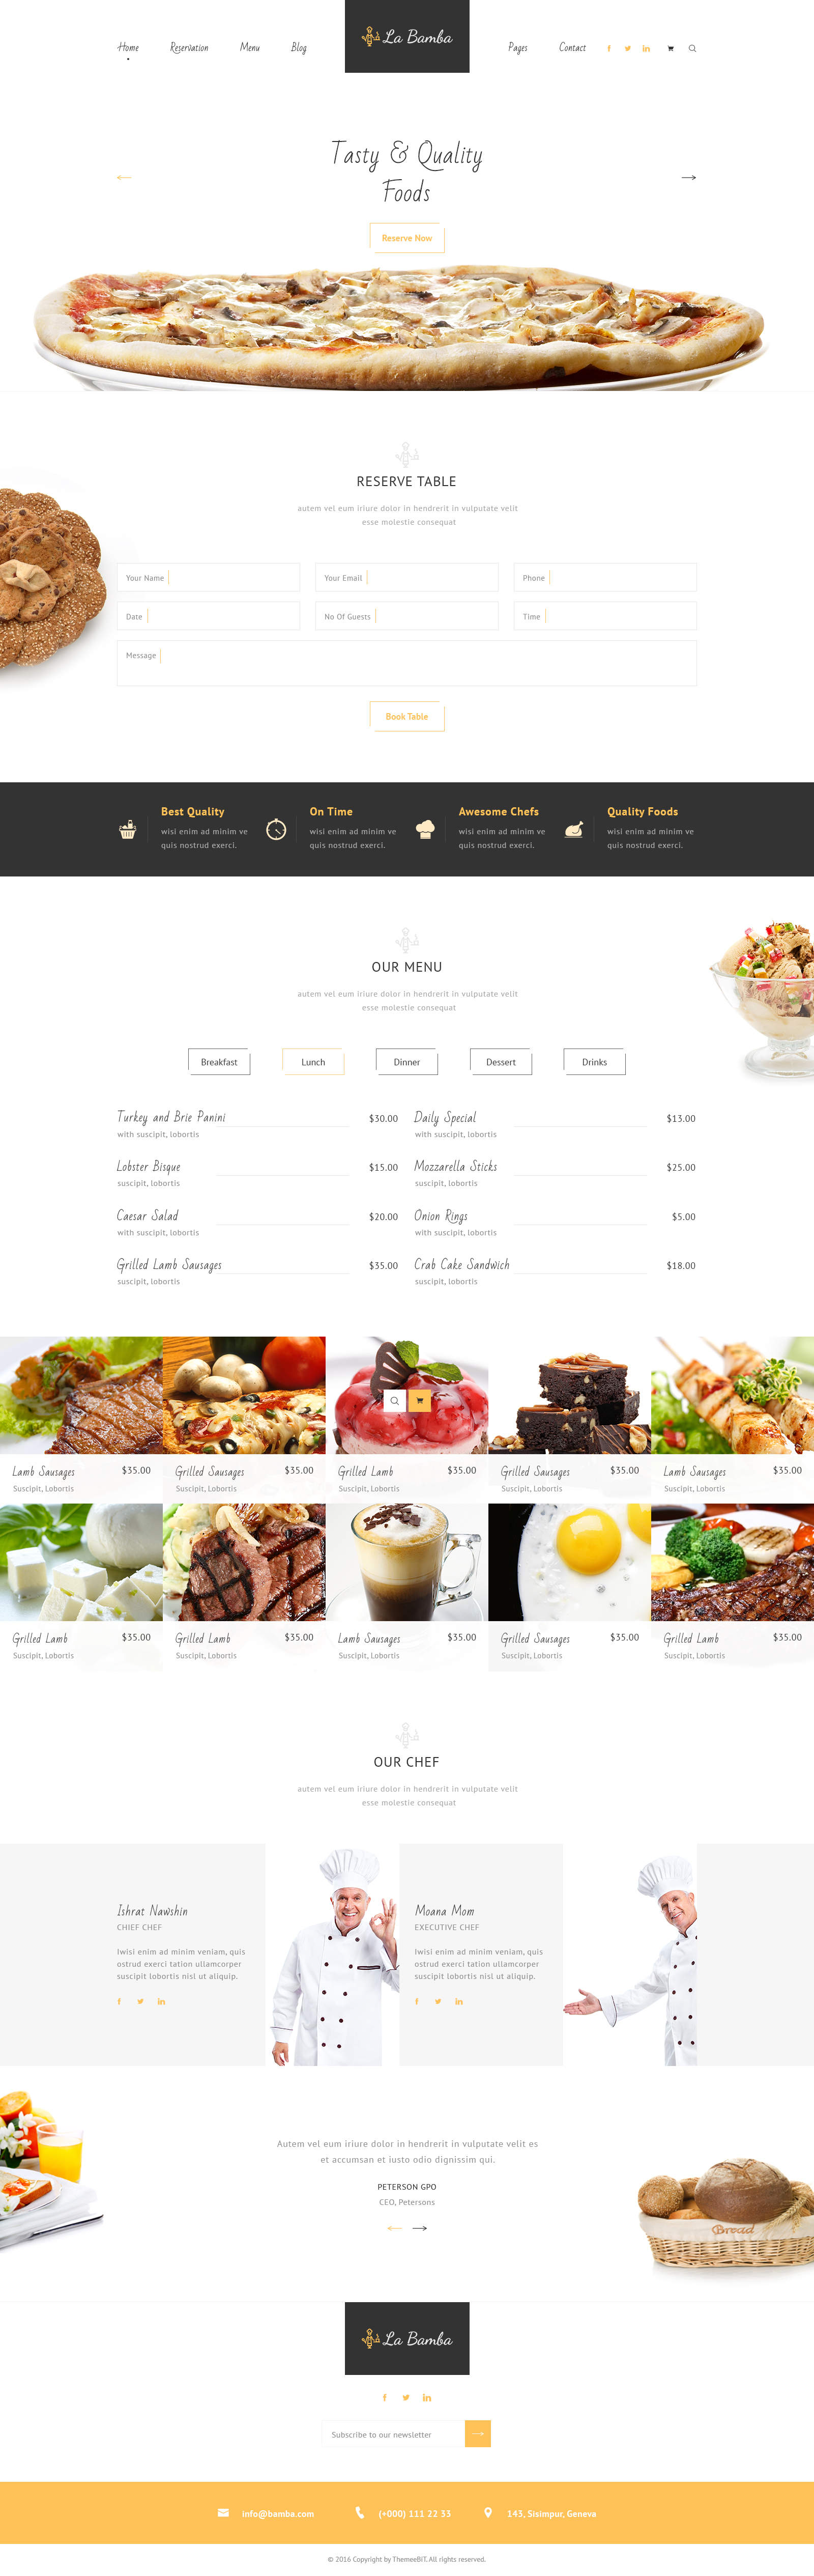 La Bamba Restaurant Psd Template By Teamebit Themeforest